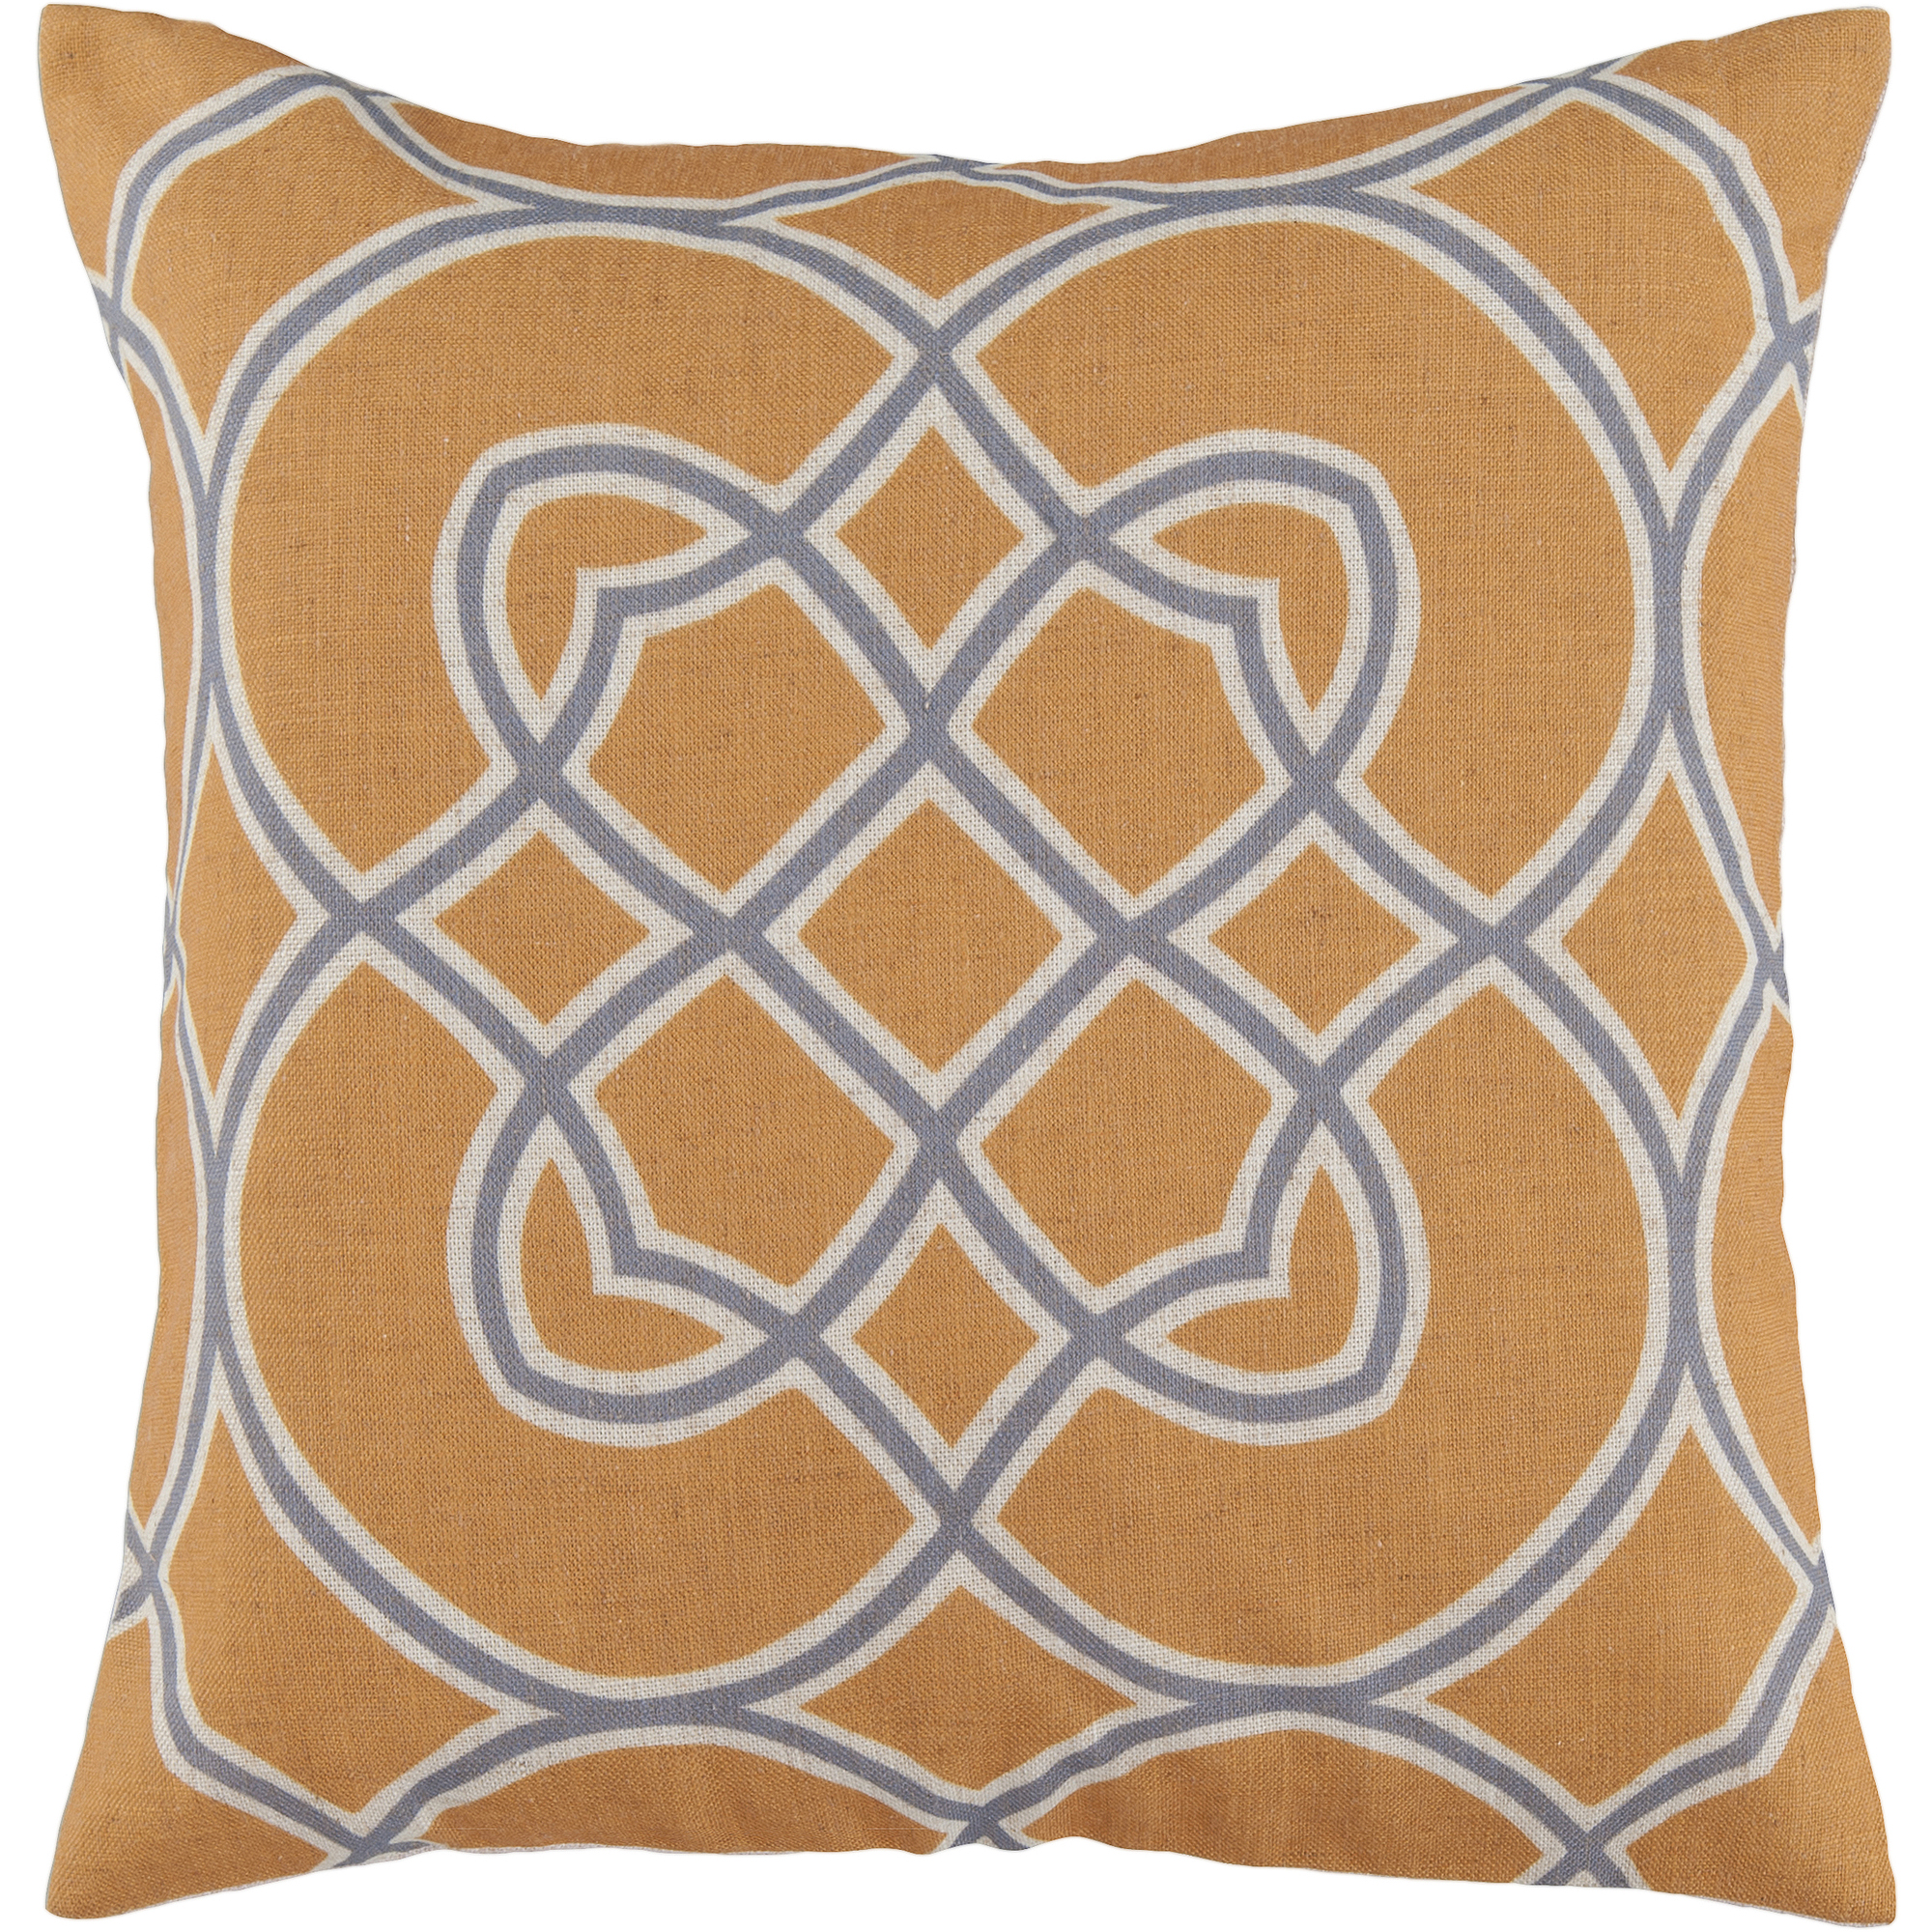 Art of Knot Brayton Hand Crafted Super Scroll Decorative Pillow with Poly Filler, Gold